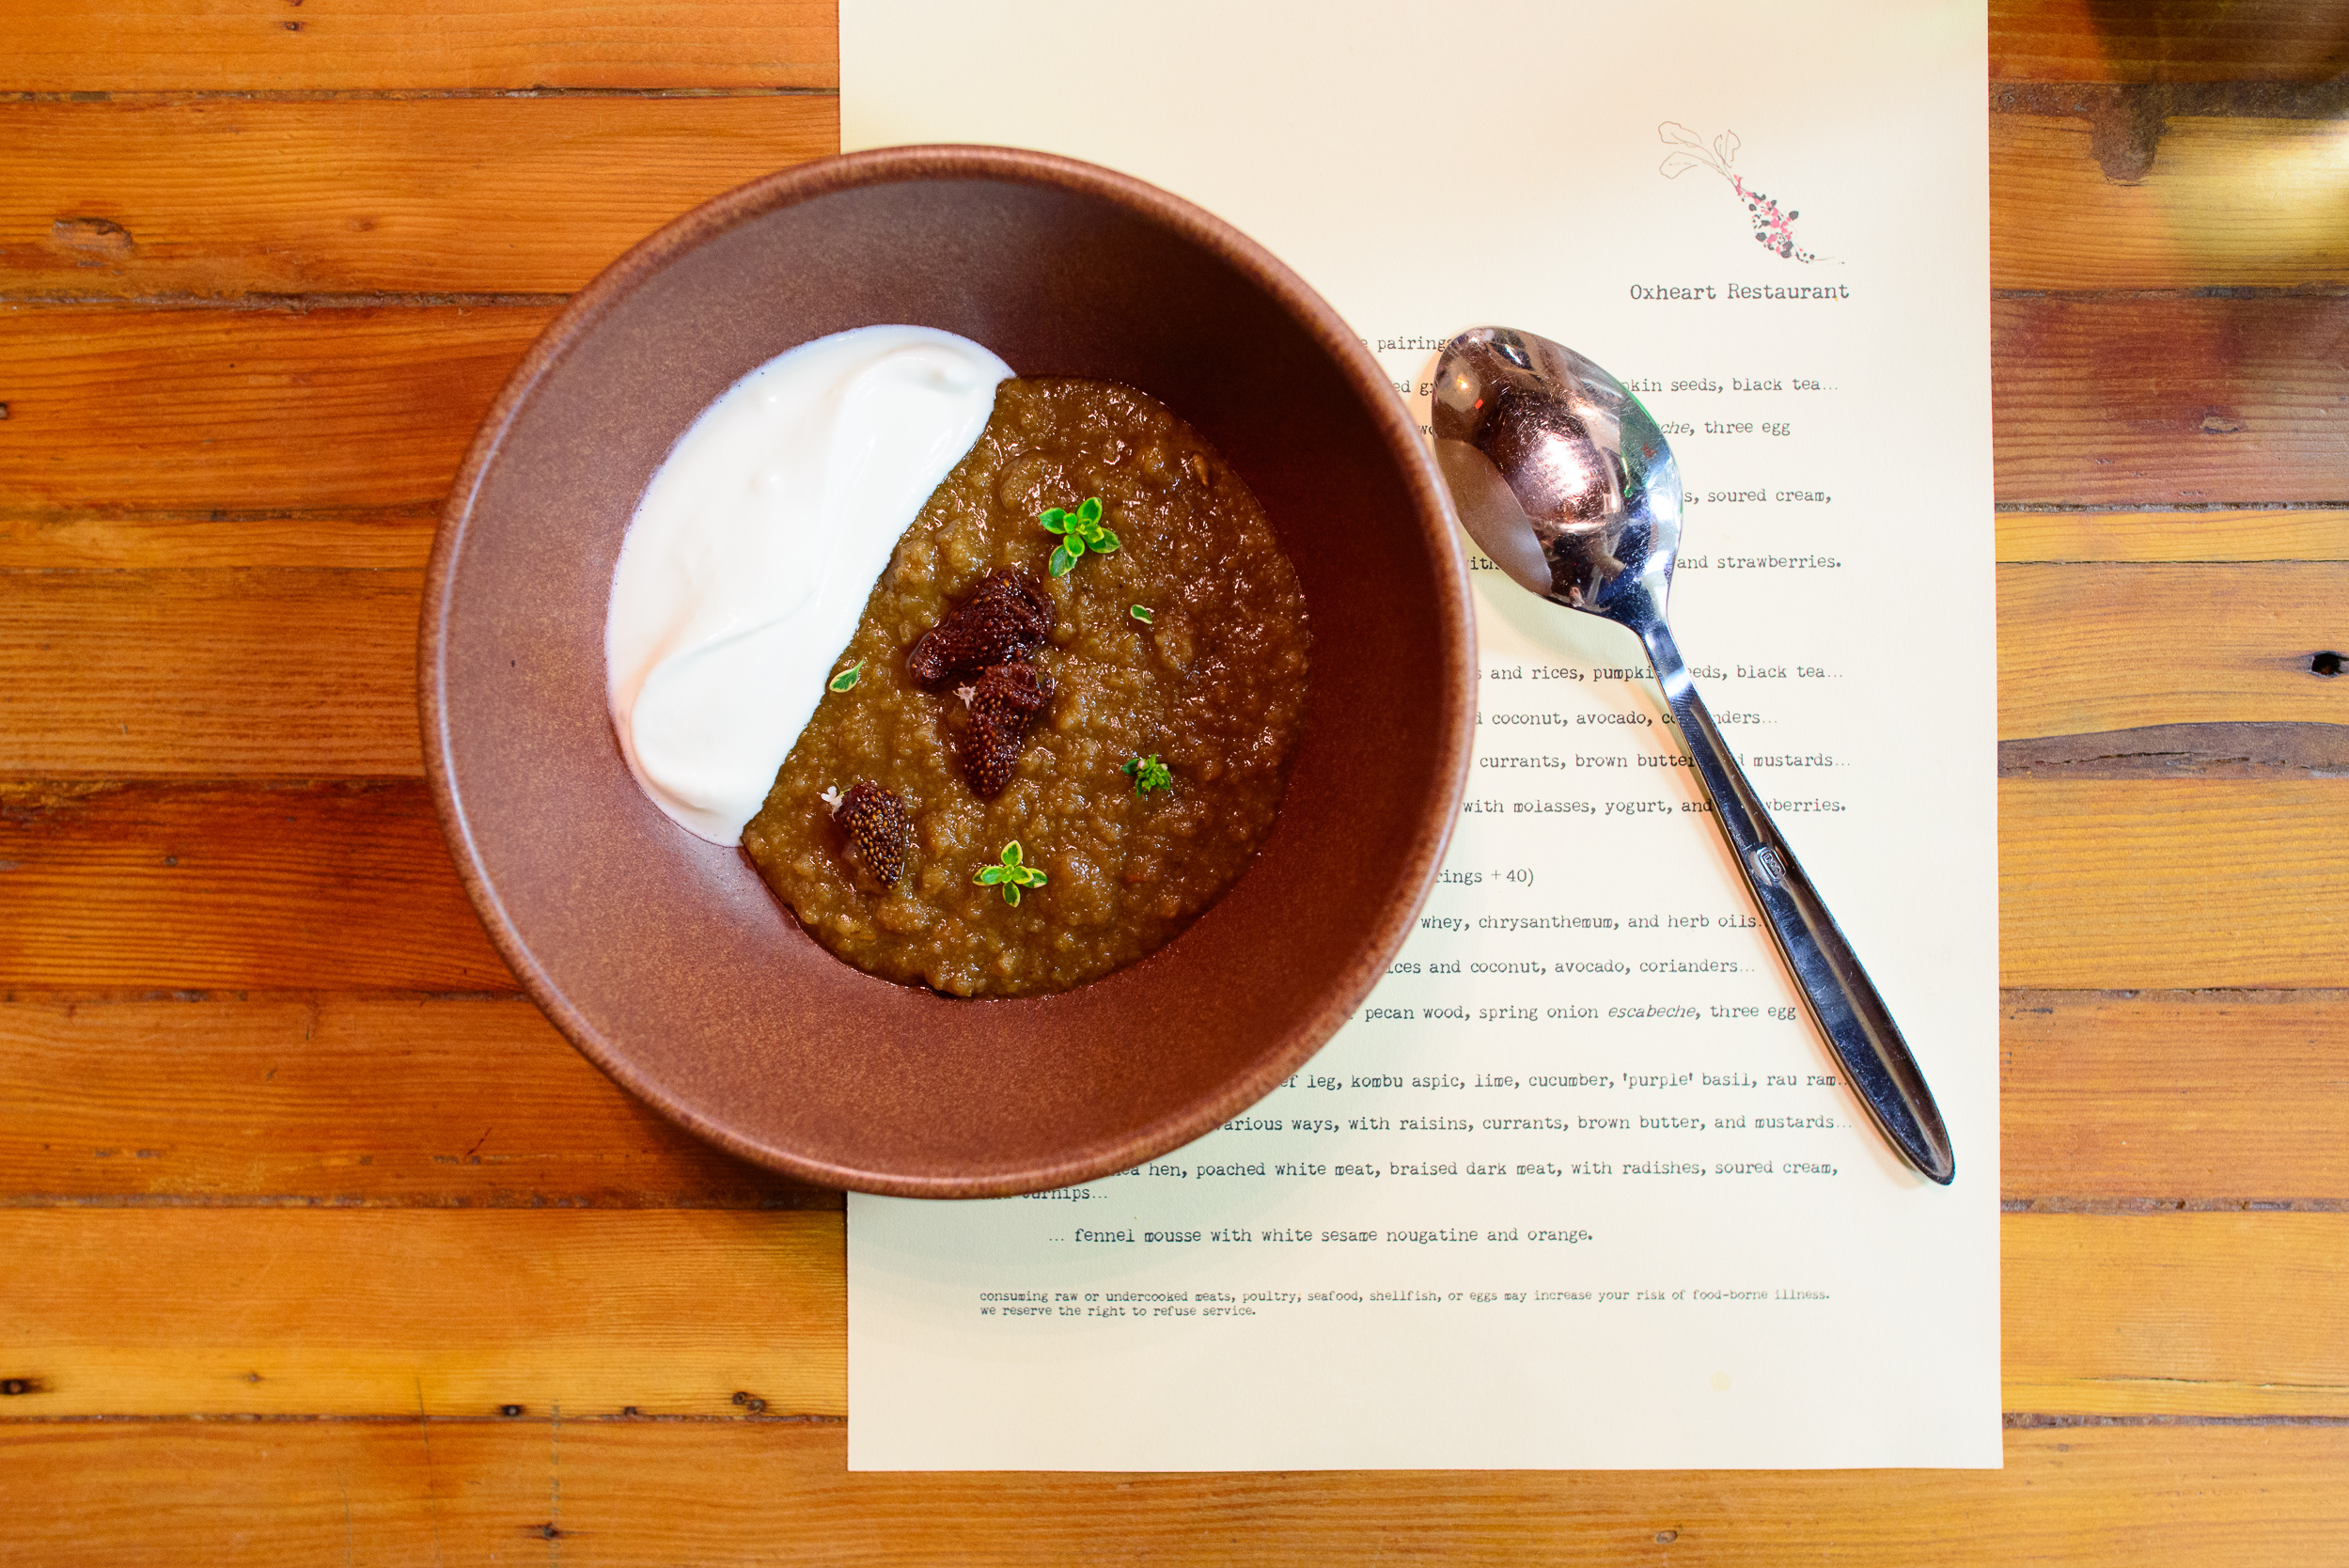 7th Course: Rye bread and sunchoke pudding sweetened with molass